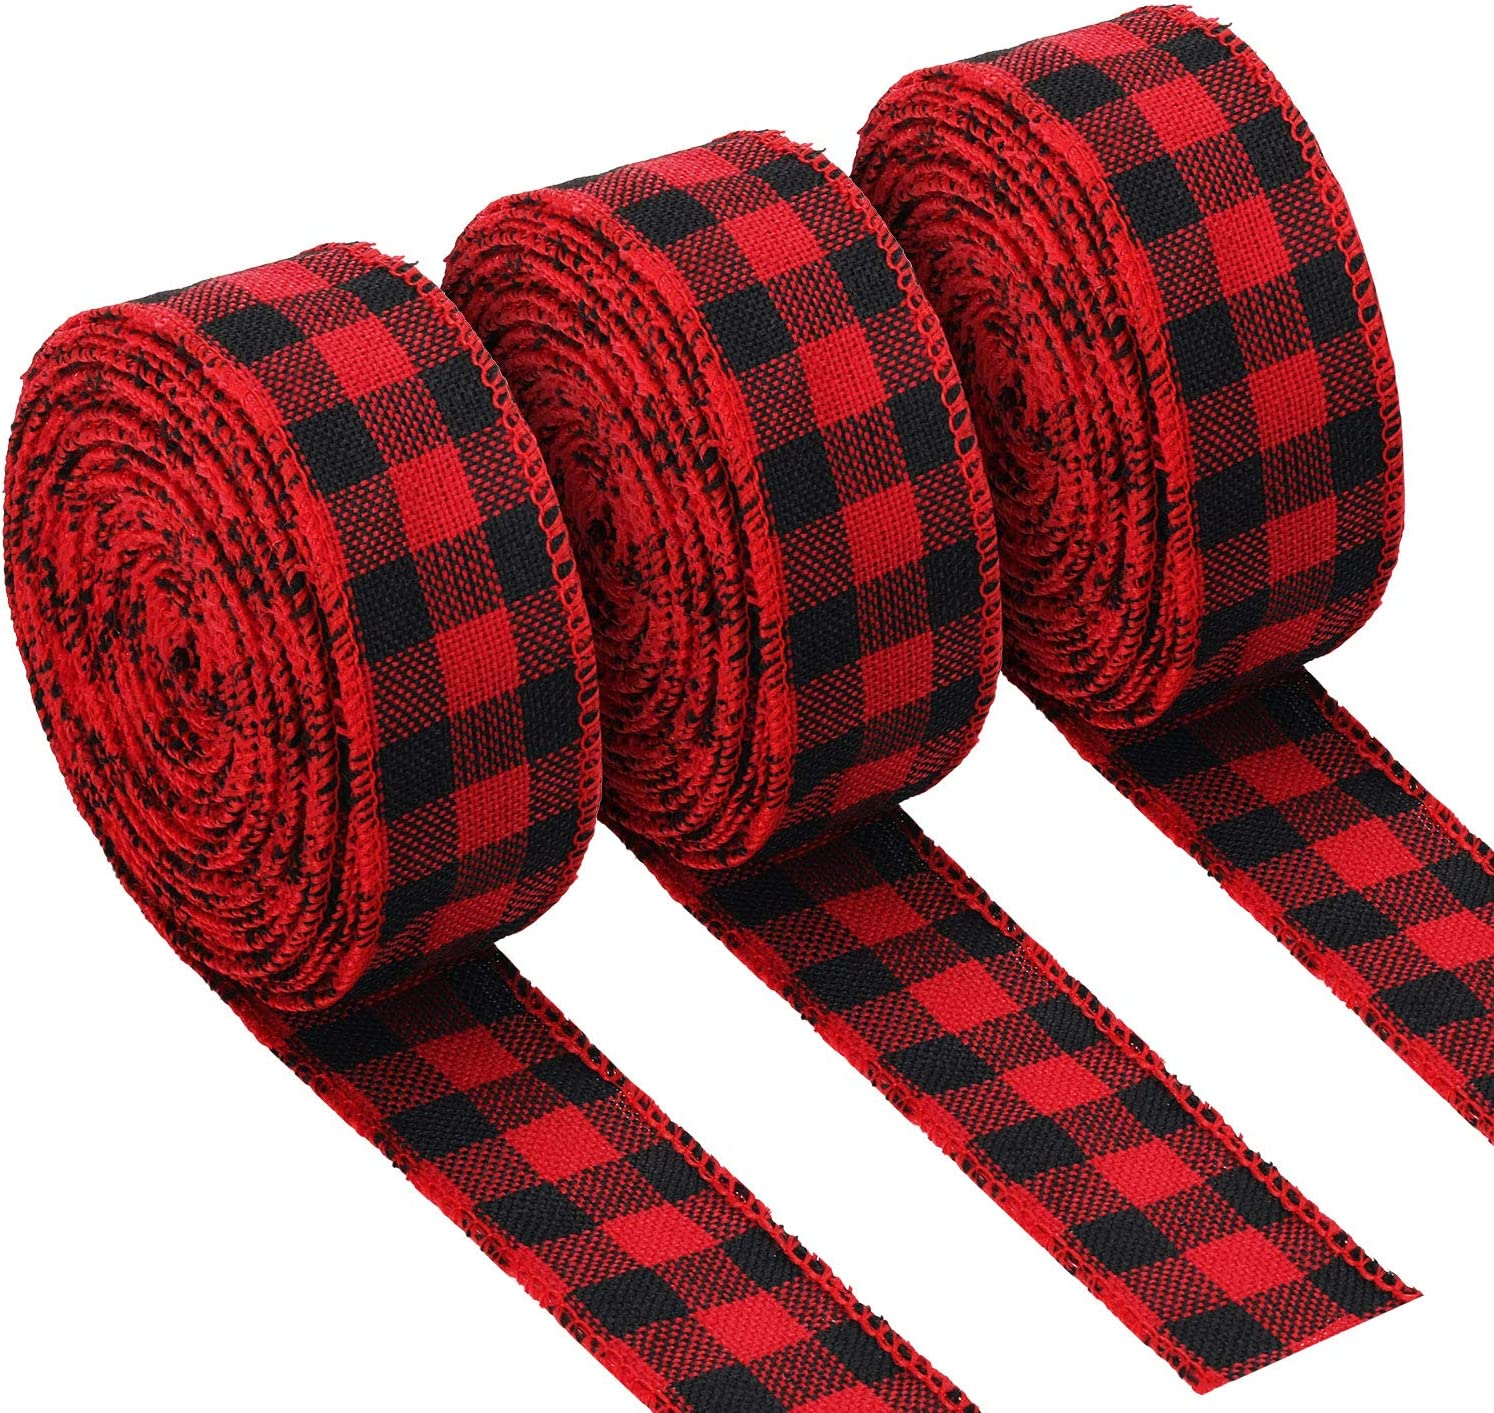 3 Rolls Red and Black Buffalo Plaid Ribbon Christmas Wired Edge Ribbon Check Burlap Ribbon for Gift Wrapping Crafts Decoration 1.34 by 315 Inches